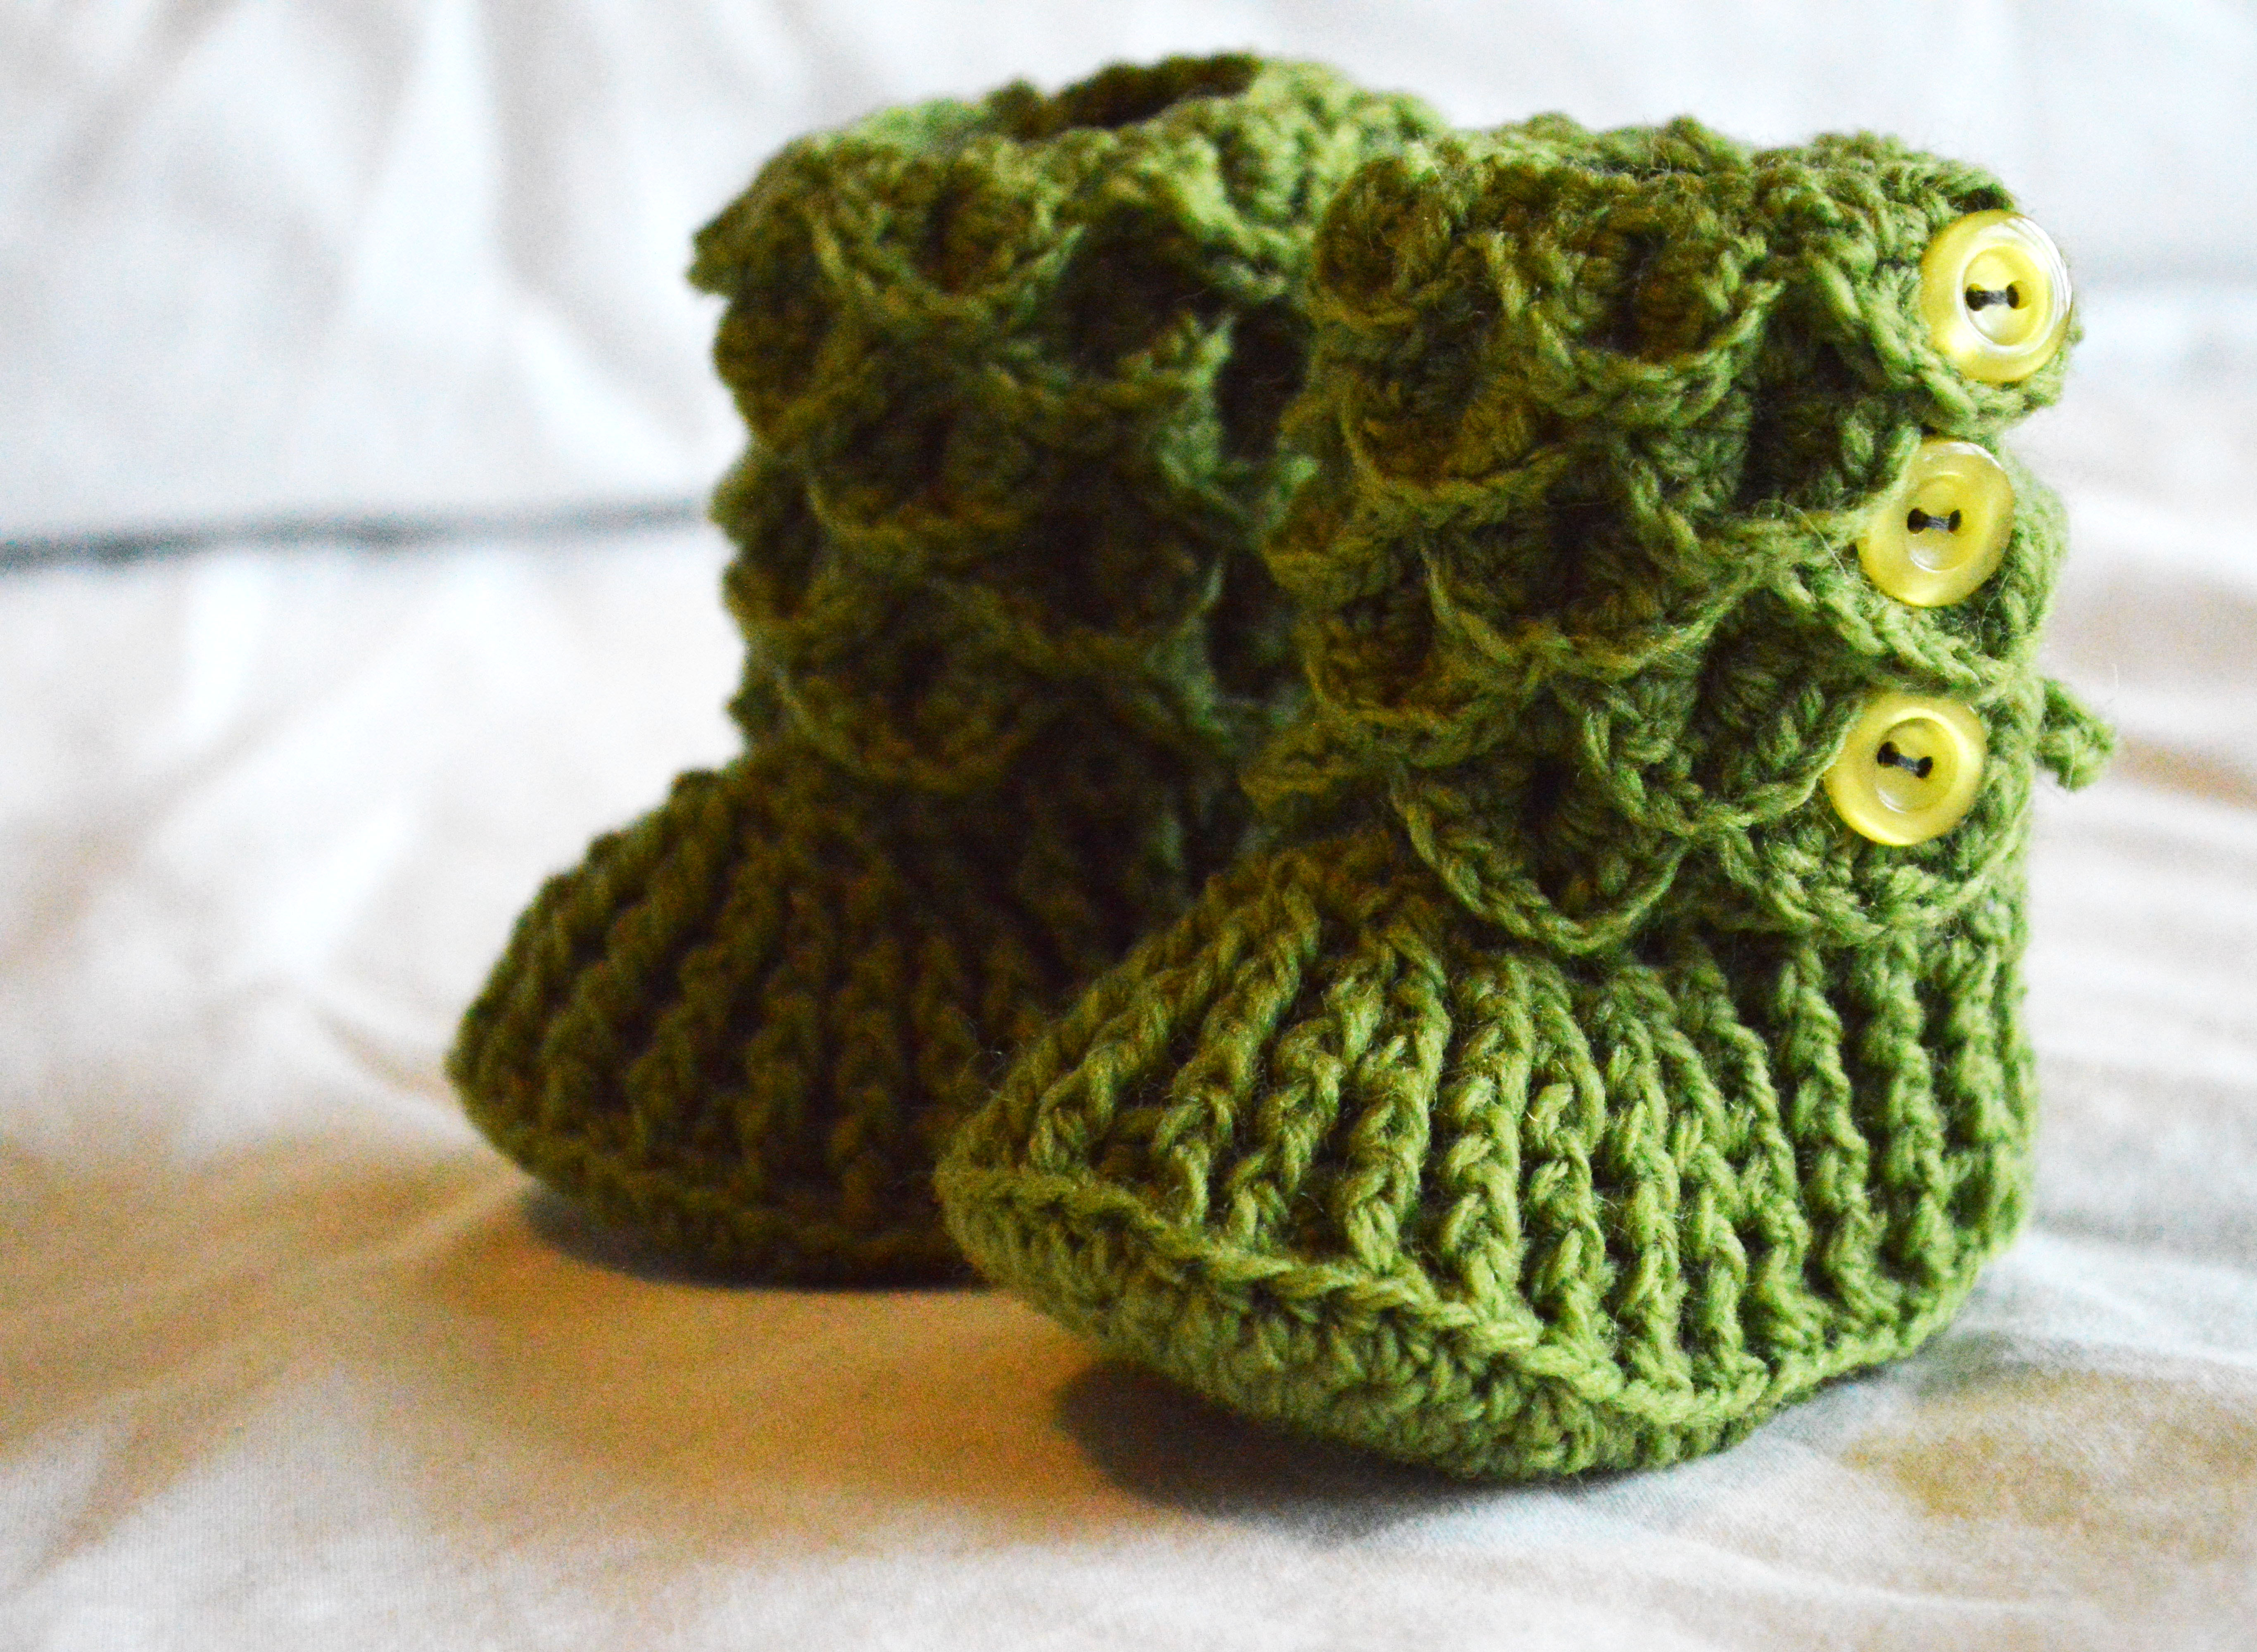 Knit Crocodile Stitch In The Round : Crochet: More Crocodile Stitch Booties   chelsiebrady